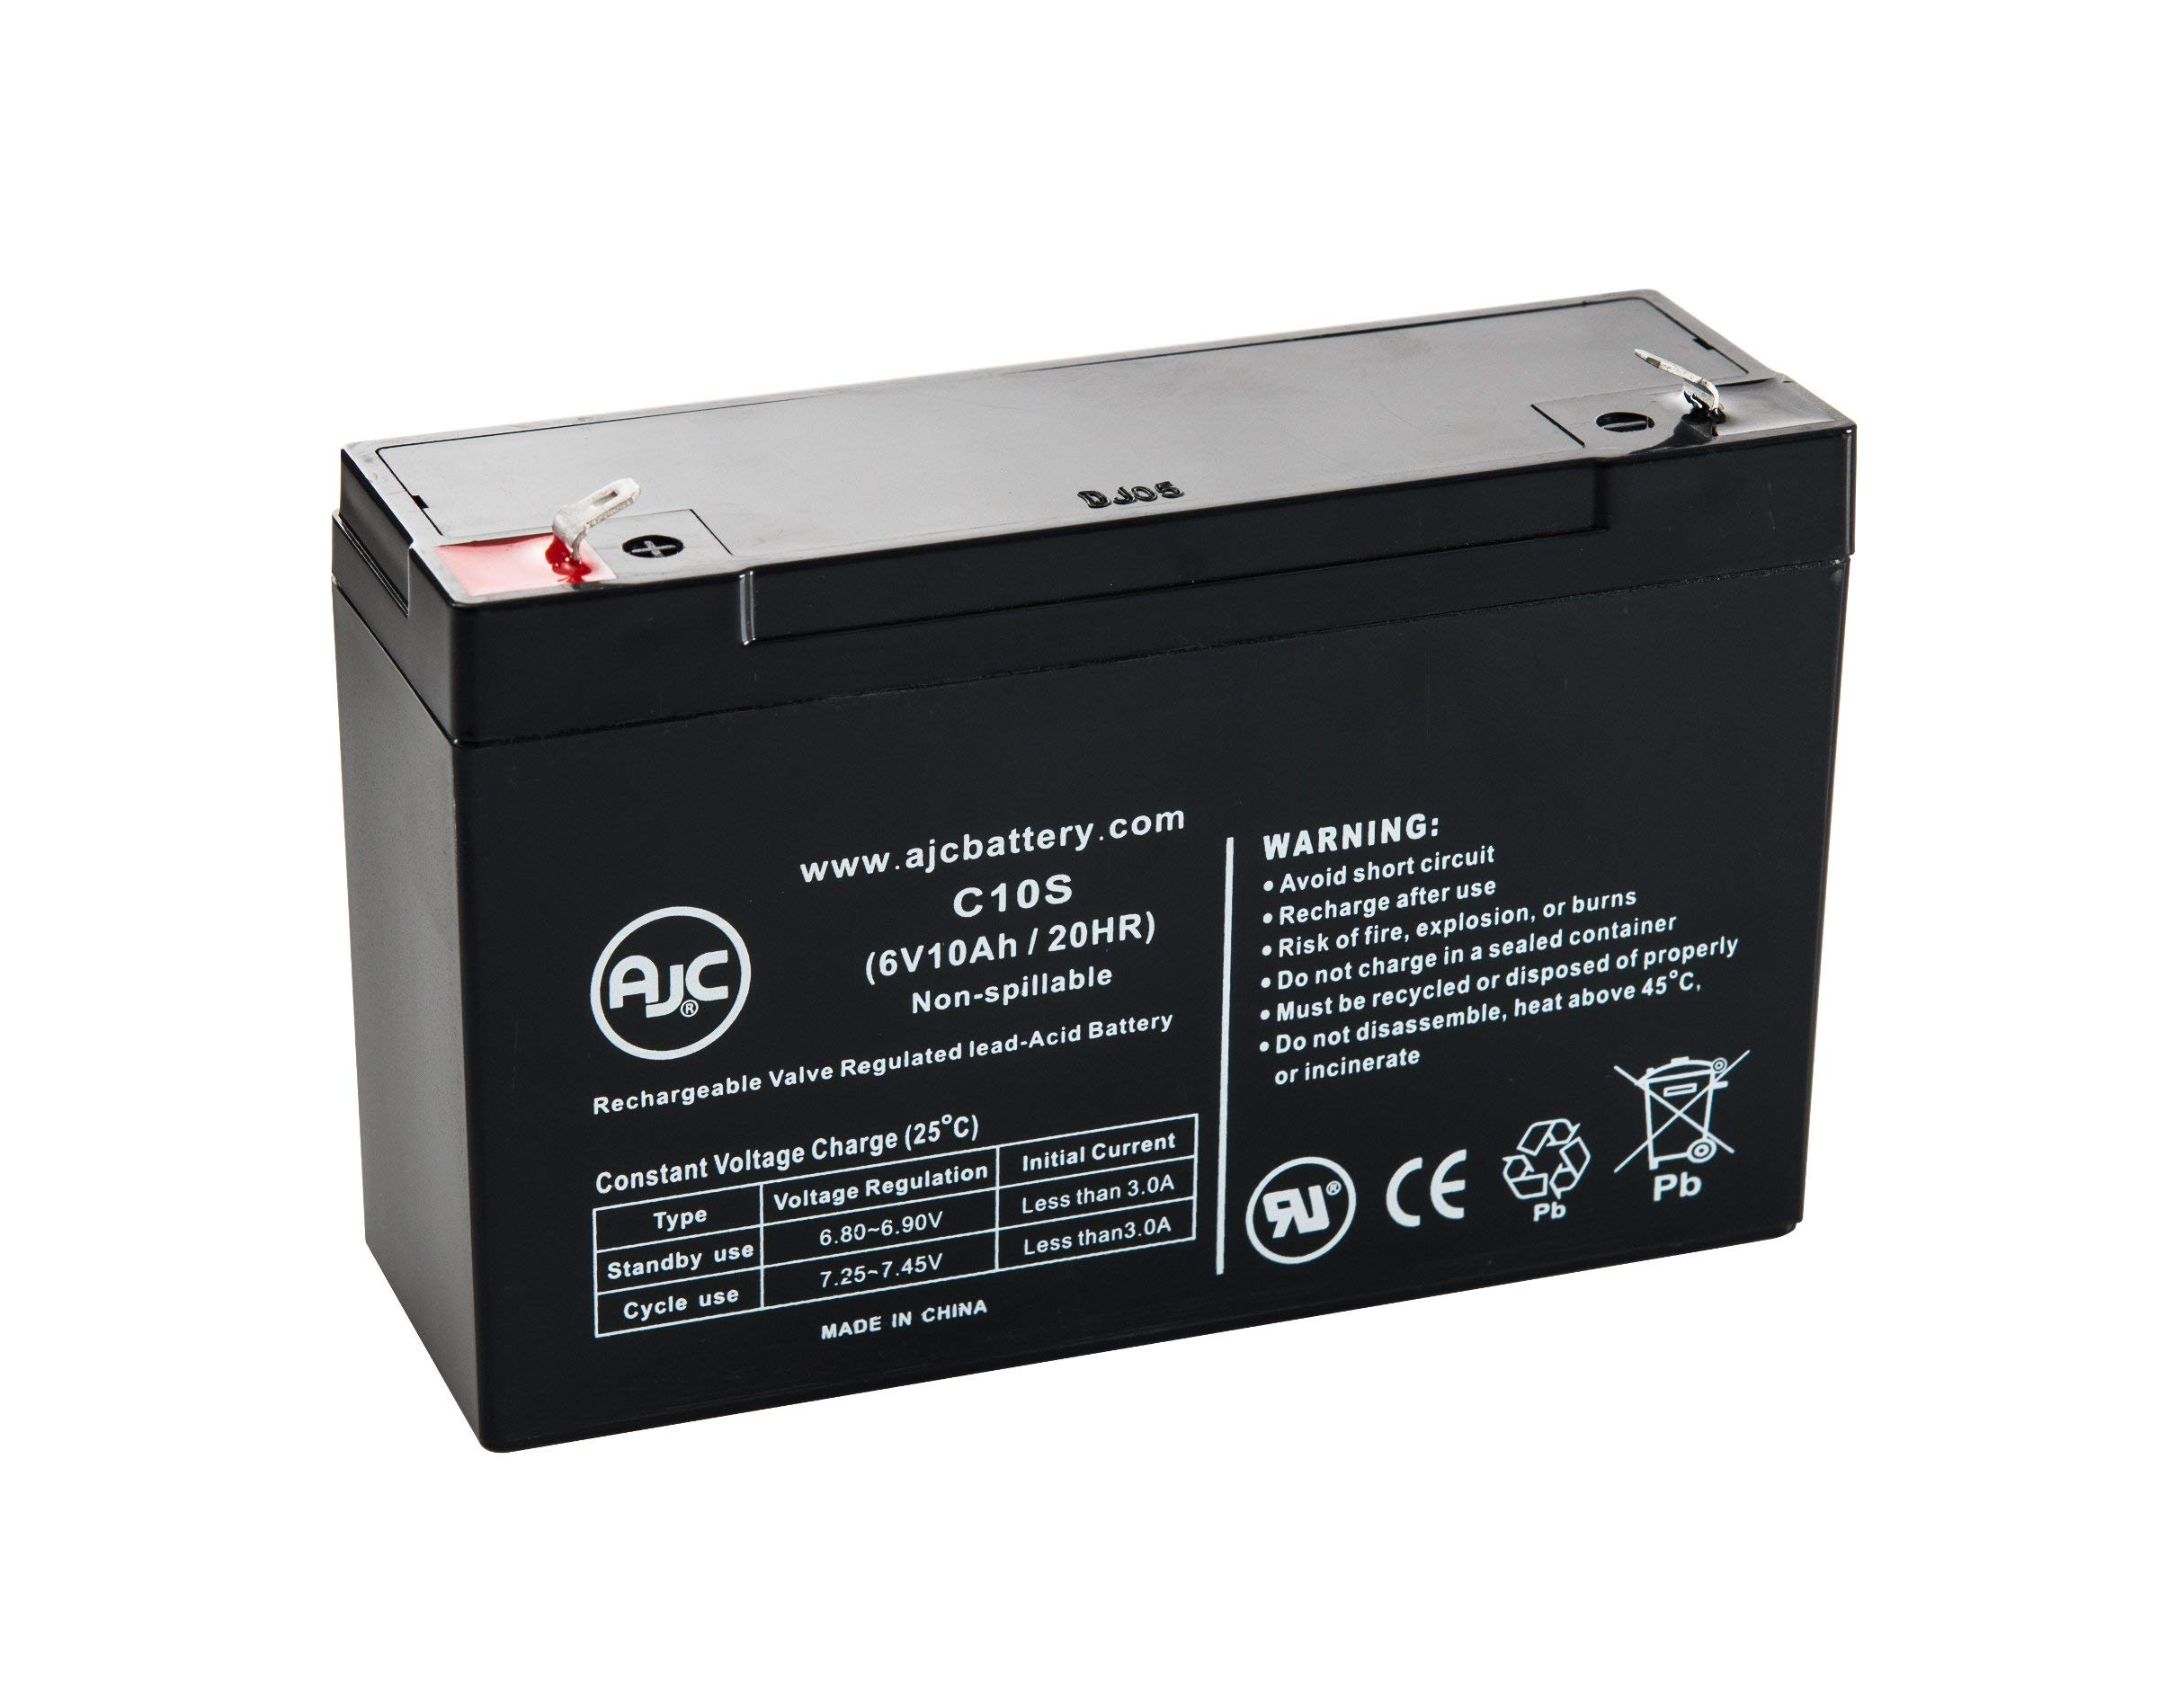 HKbil 3FM10 6V 10Ah Sealed Lead Acid Battery - This is an AJC Brand Replacement by AJC